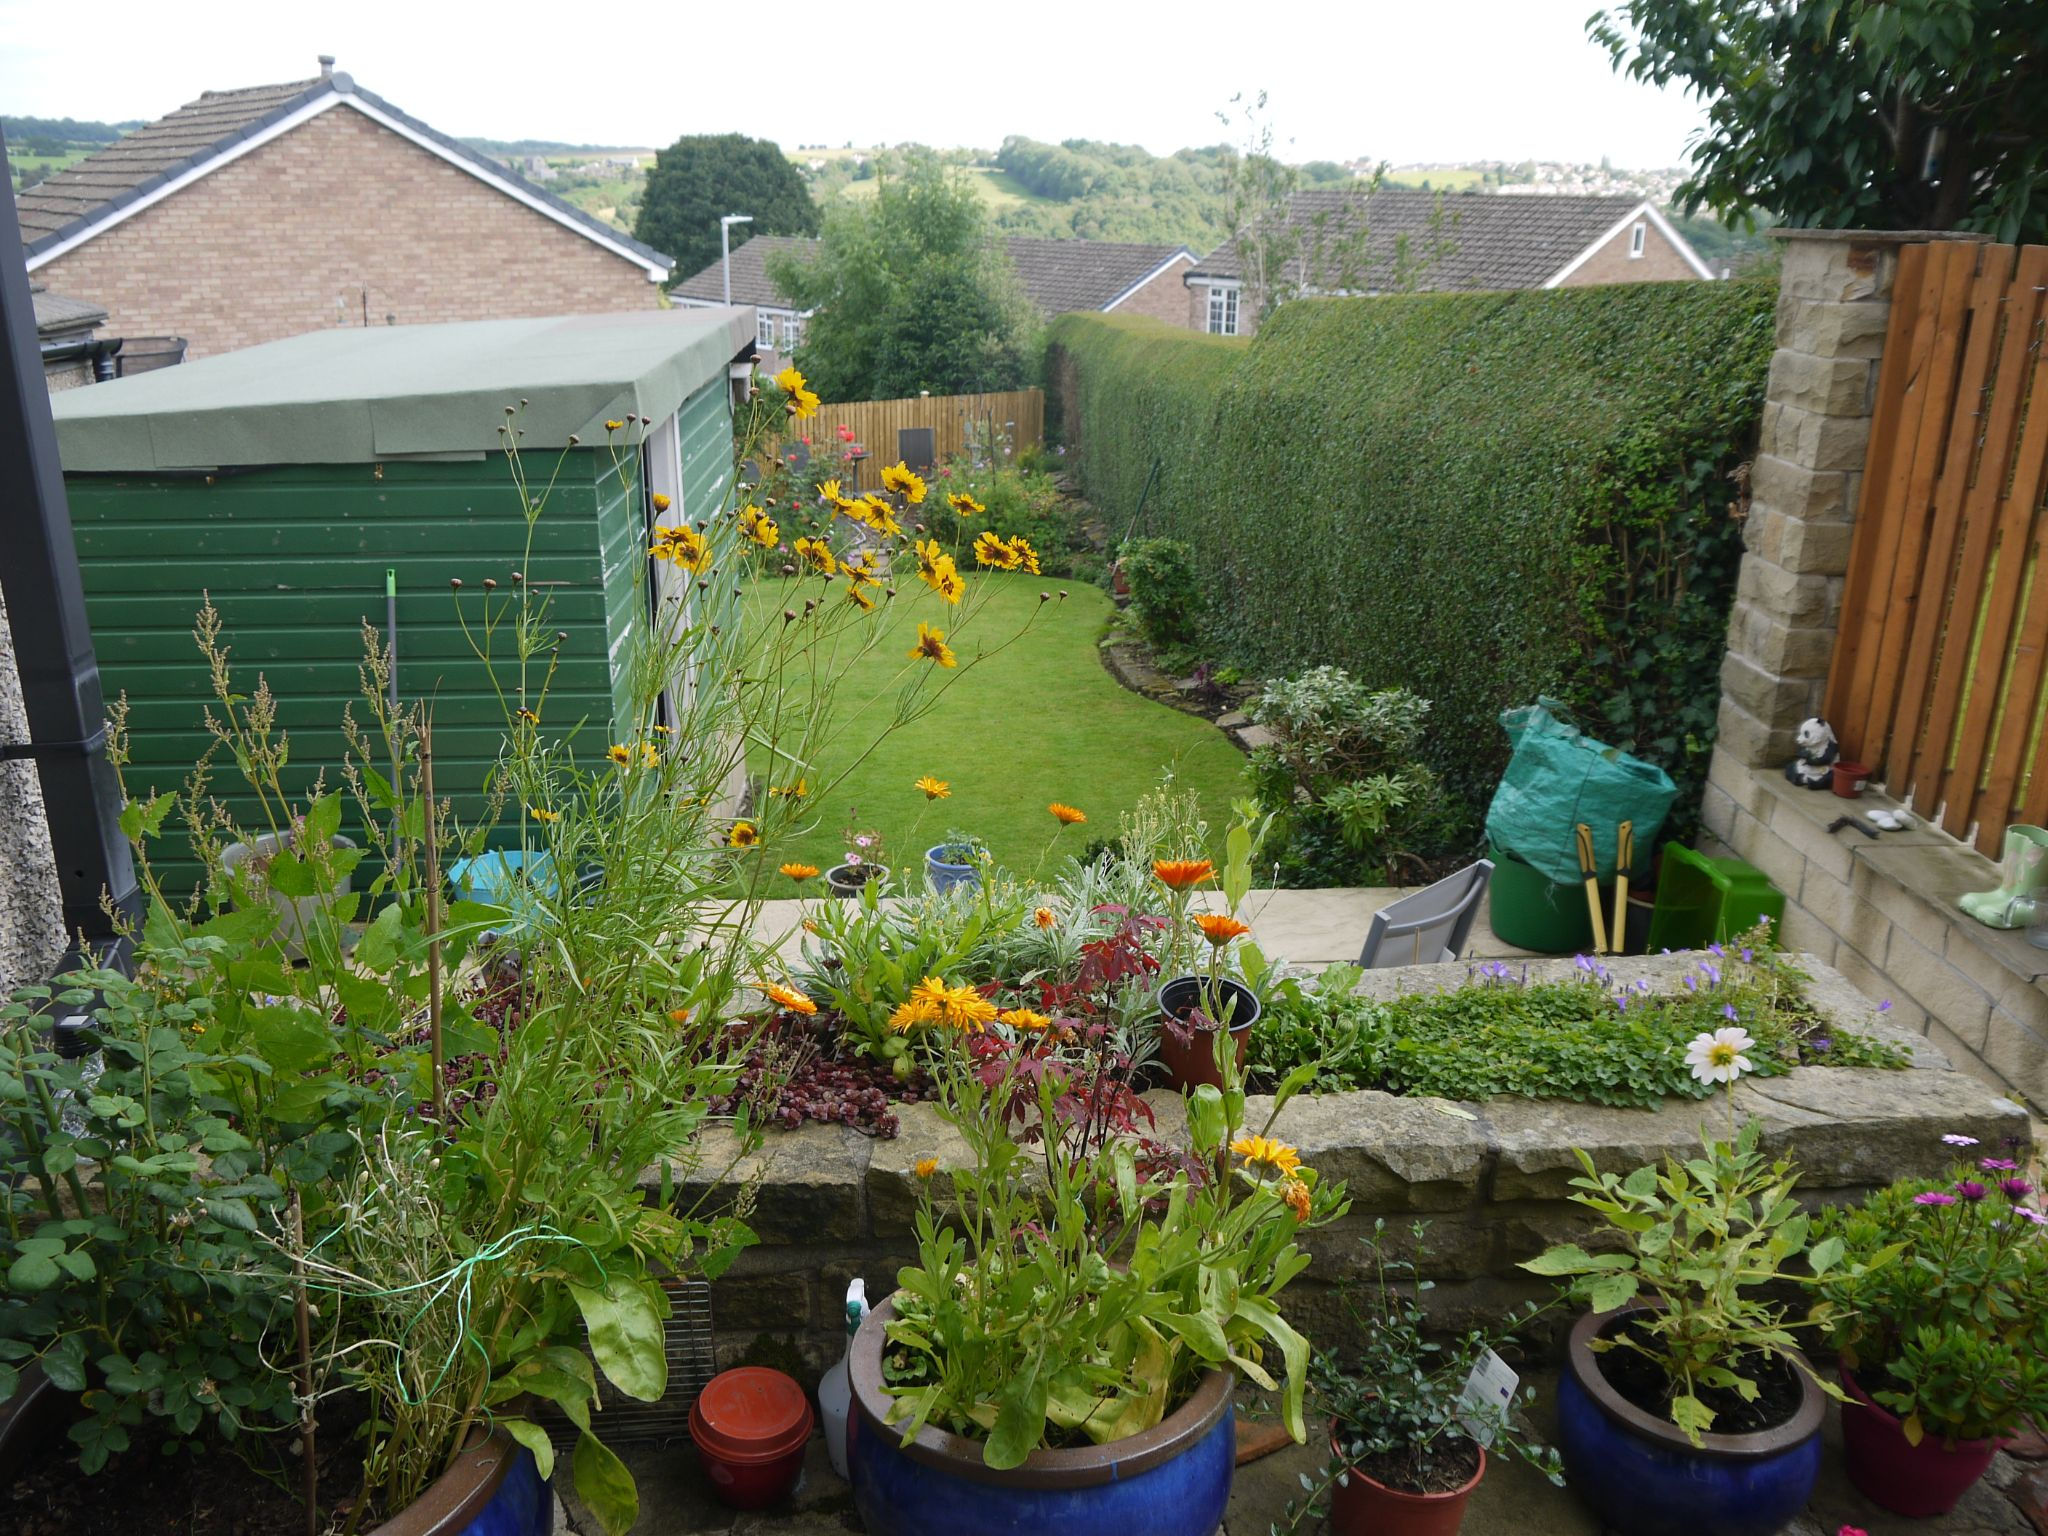 3 bedroom semi-detached house SSTC in Calderdale - Photograph 10.